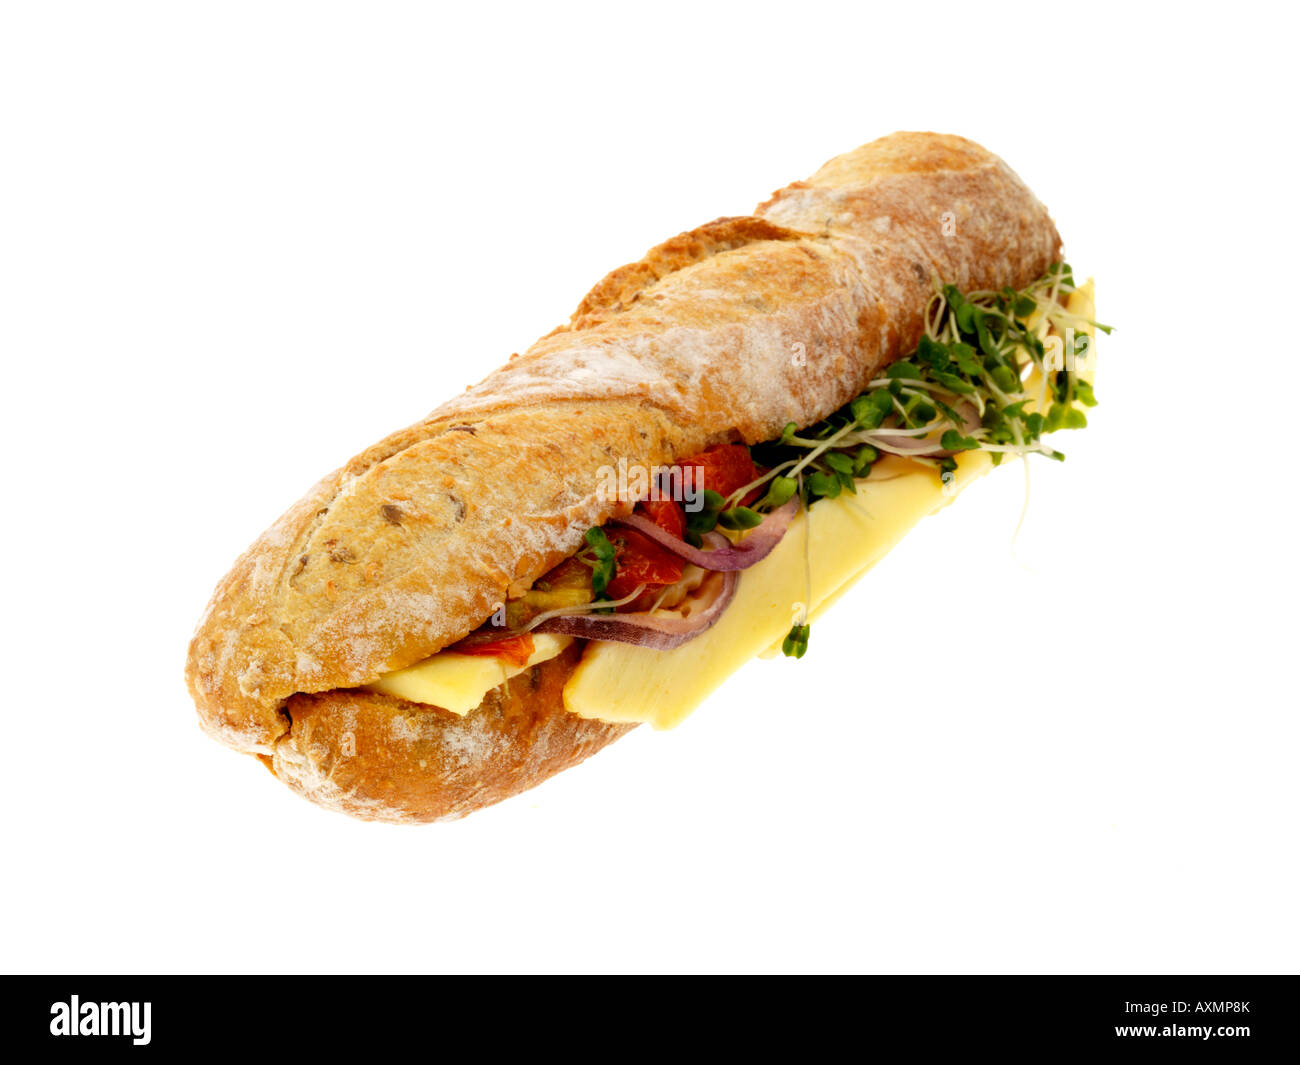 Cheddar Cheese And Pickle Baguette - Stock Image